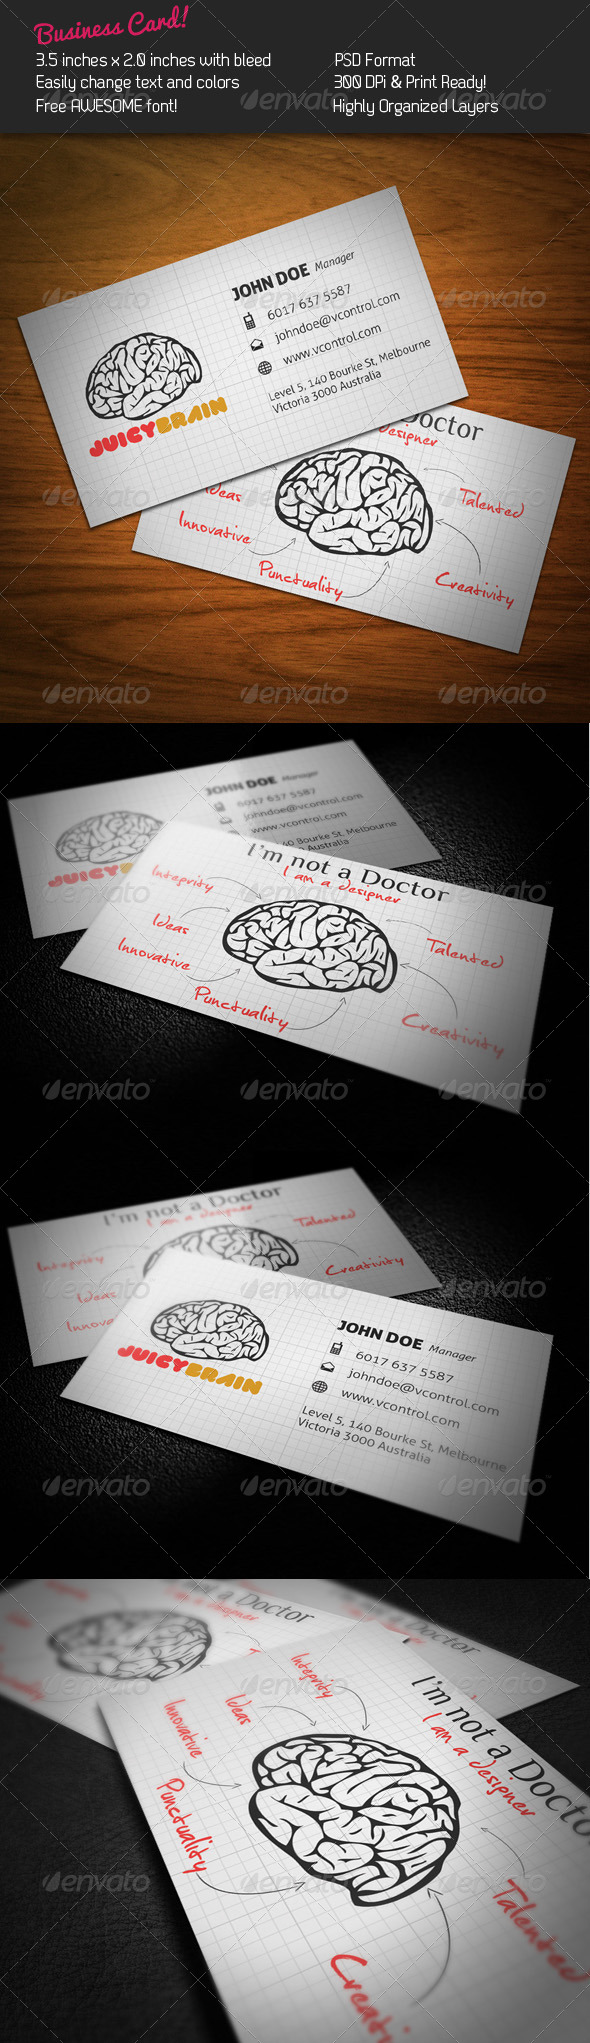 Juicy Brain Business Card - Creative Business Cards